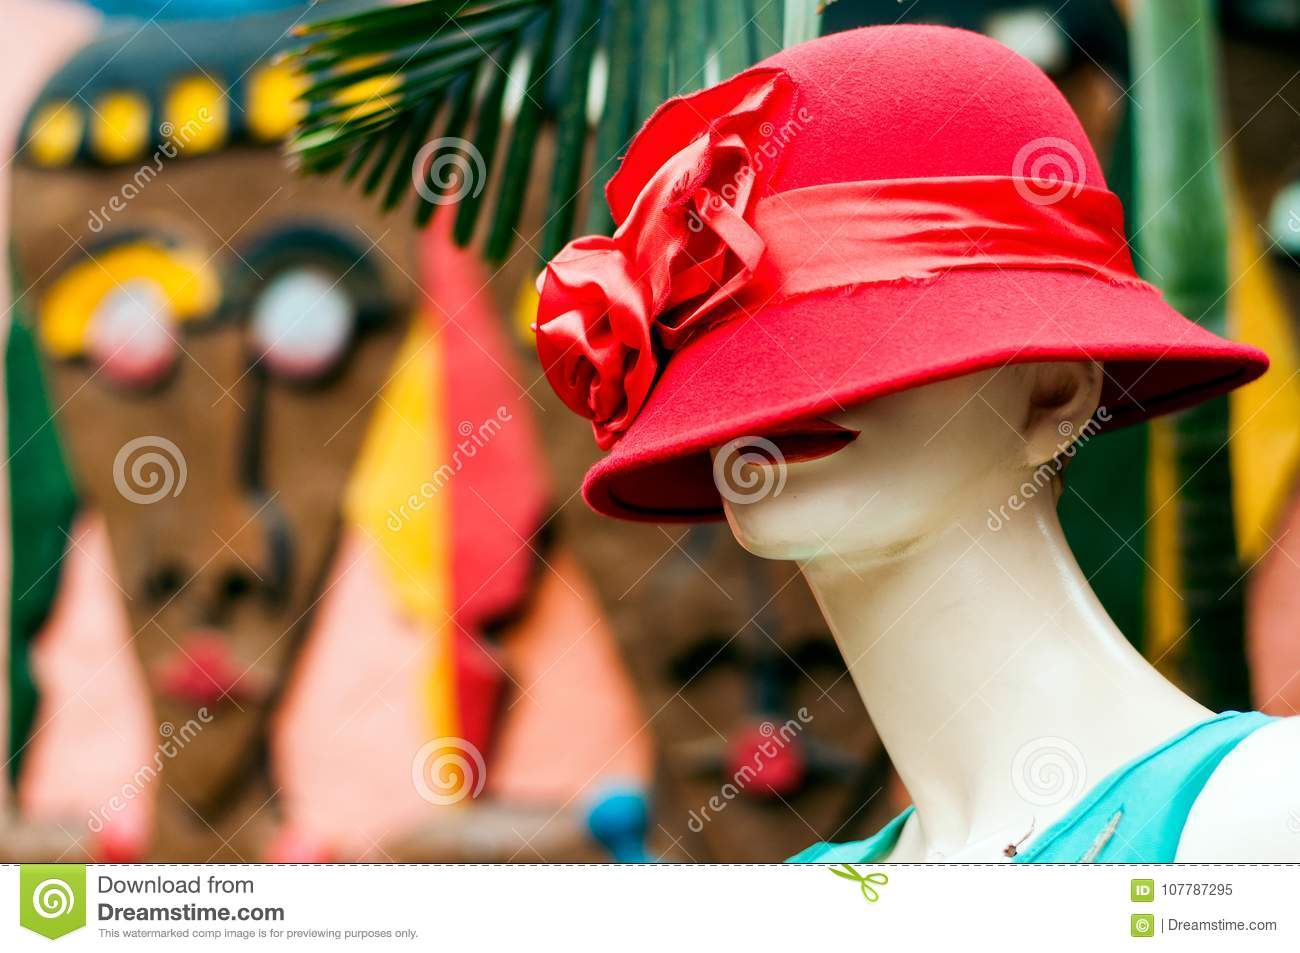 677646565b4ed Store mannequin with red hat in Pioneer Mall